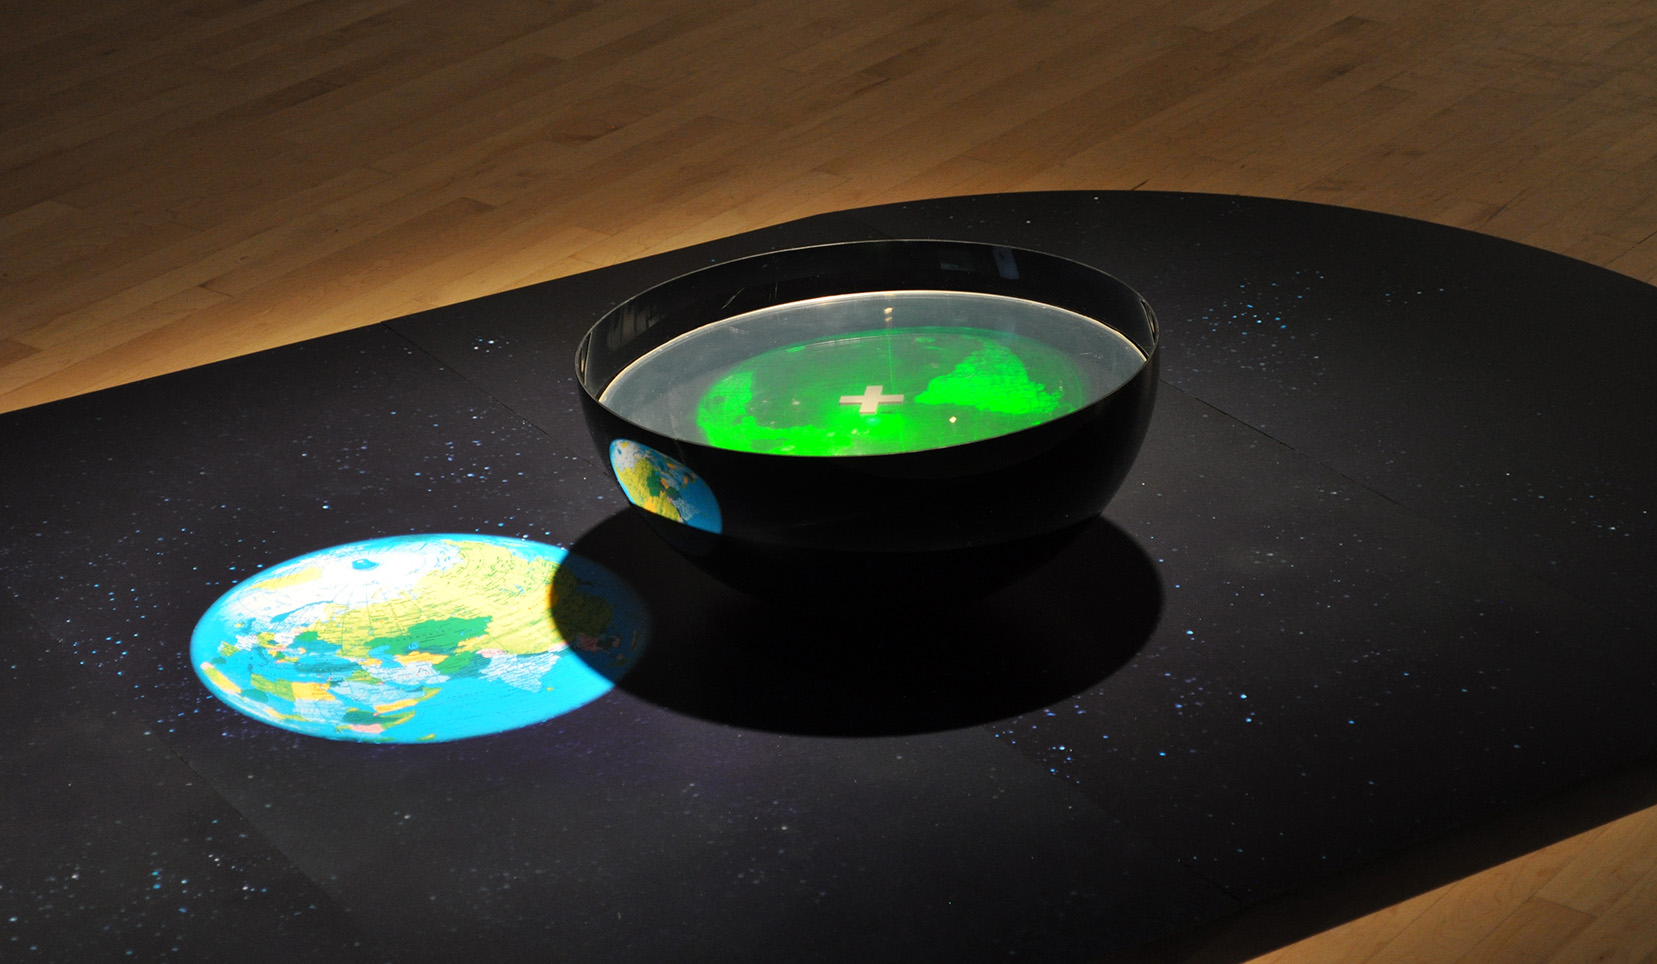 """Un monde d'incertitude"", 2008 (hologram - Plus)"